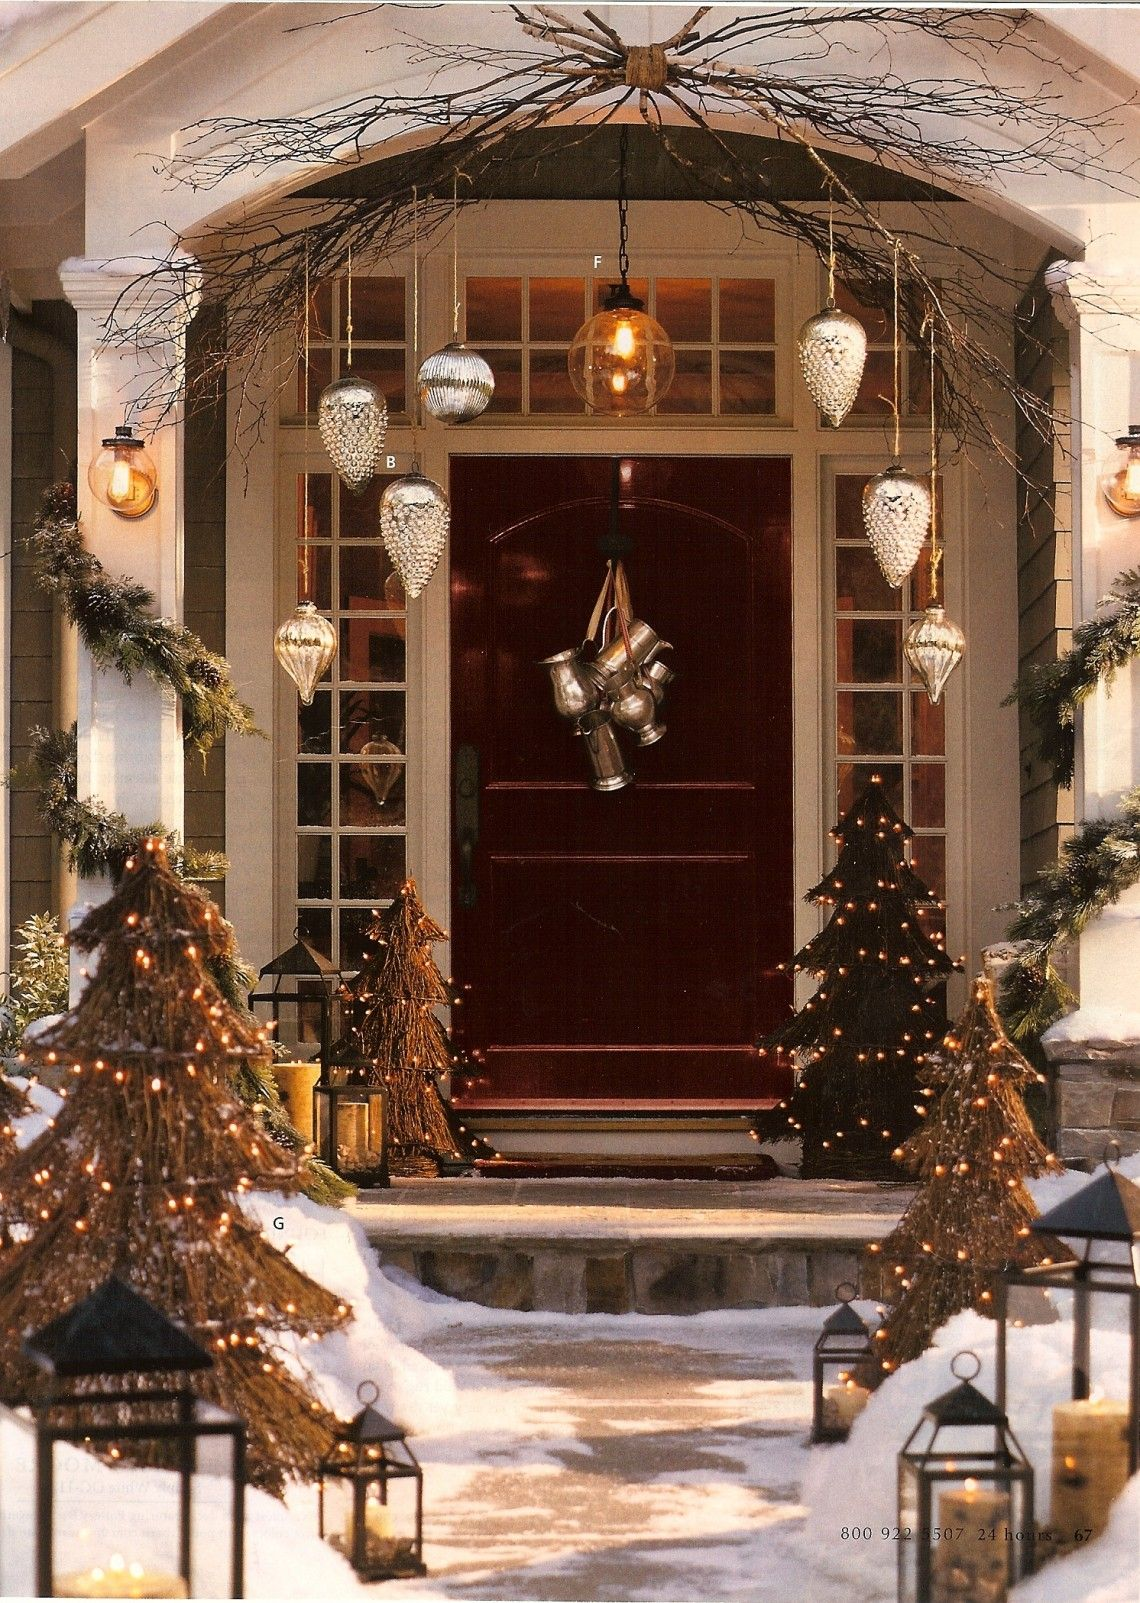 Hanging Outdoor Christmas Decorations